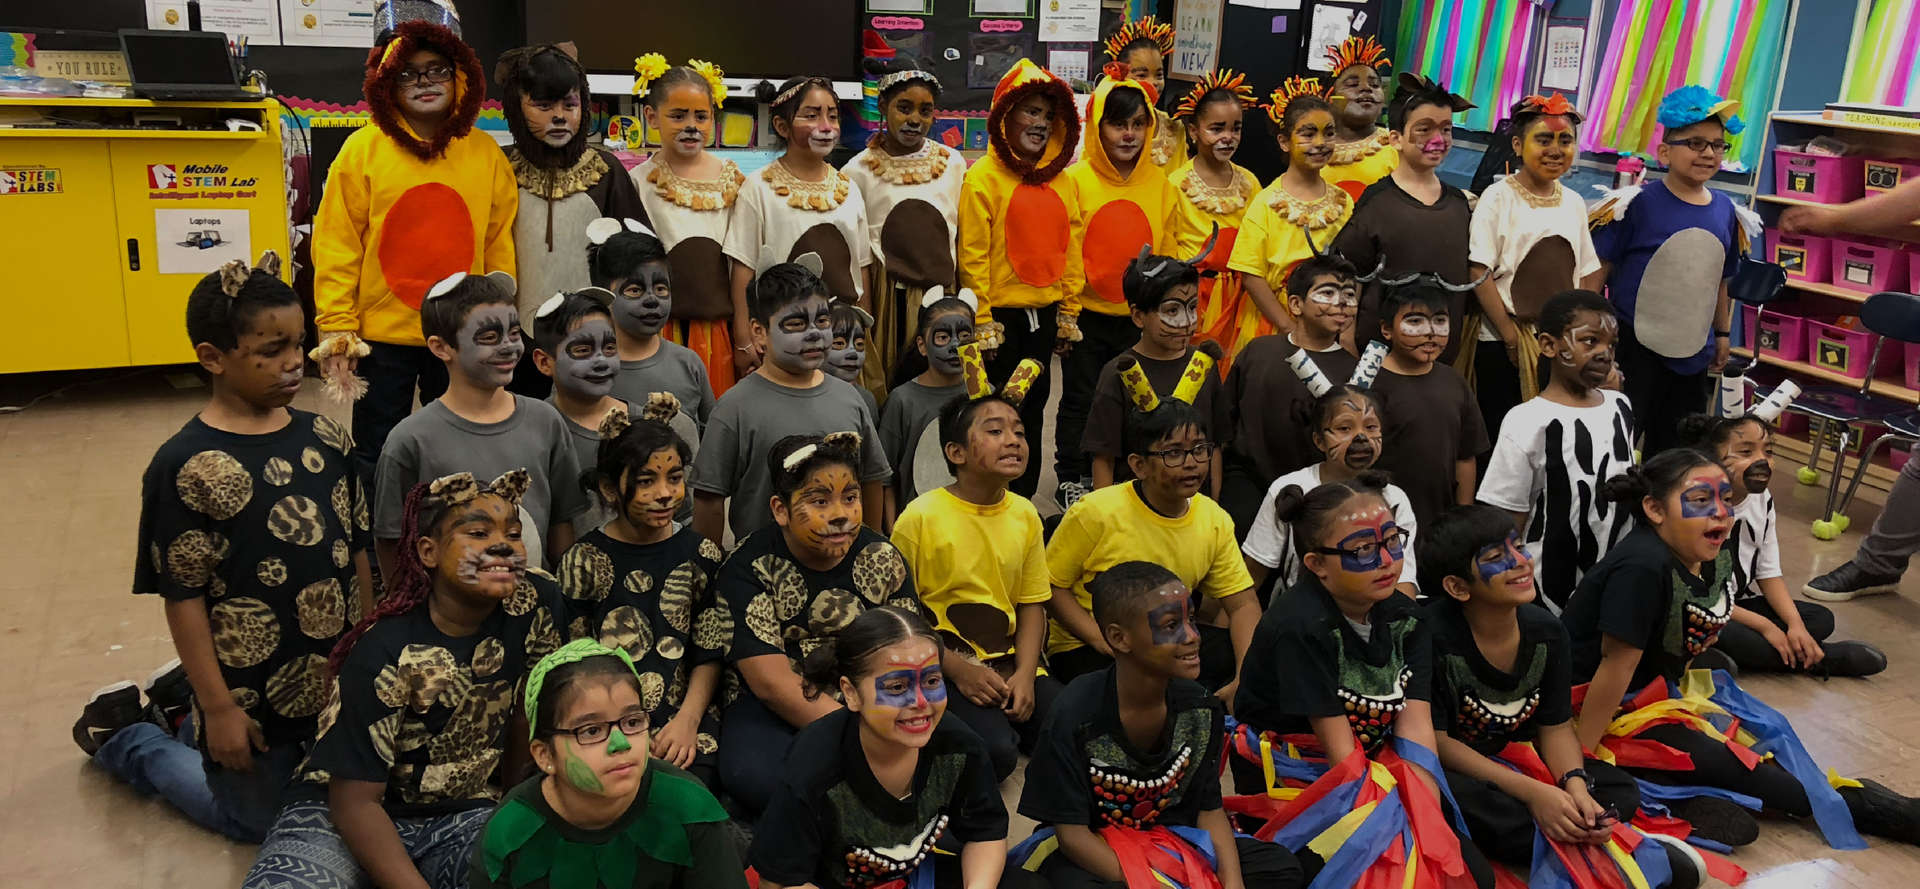 Students in the classroom dressed in costumes